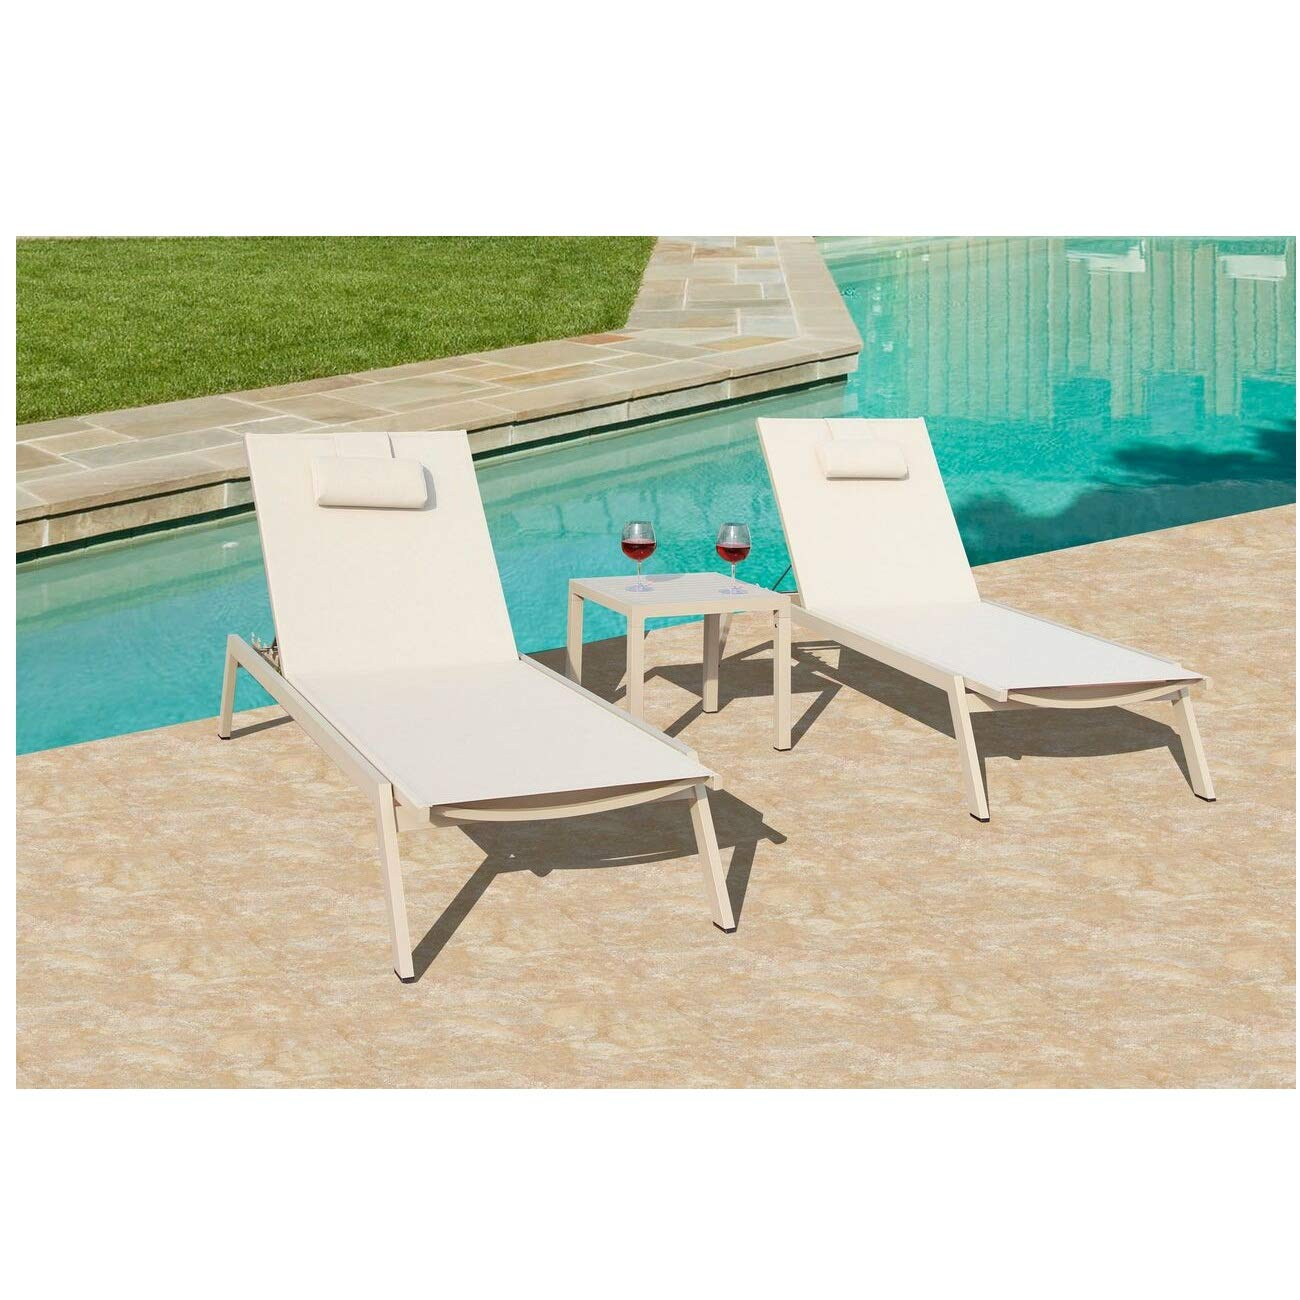 3 Piece Carina Outdoor Patio Dining Set Powder Coated Aluminum Almond Frame Finish 77.5''